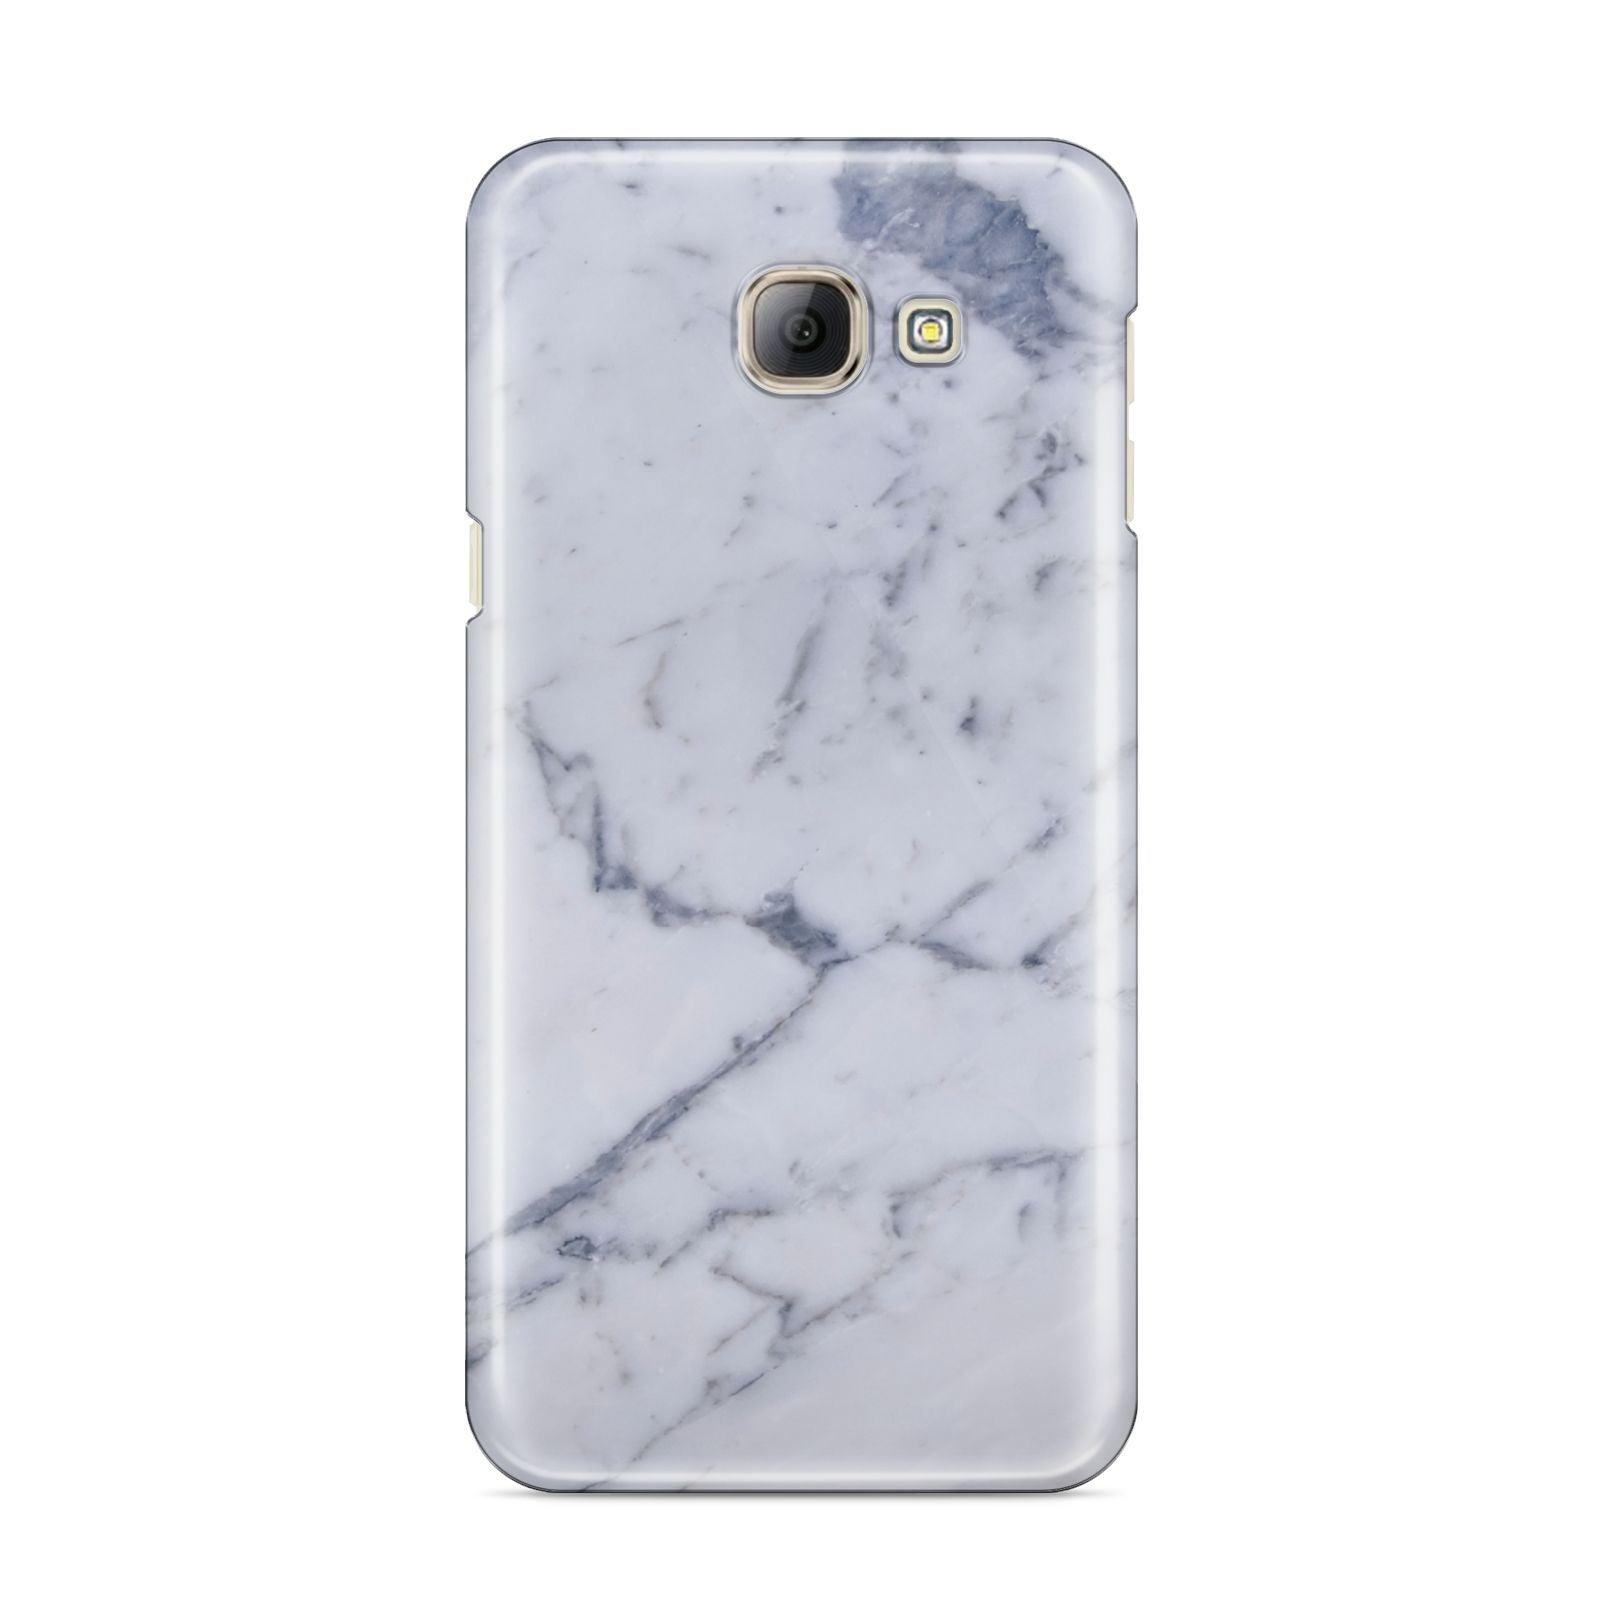 Faux Marble Grey White Samsung Galaxy A8 2016 Case